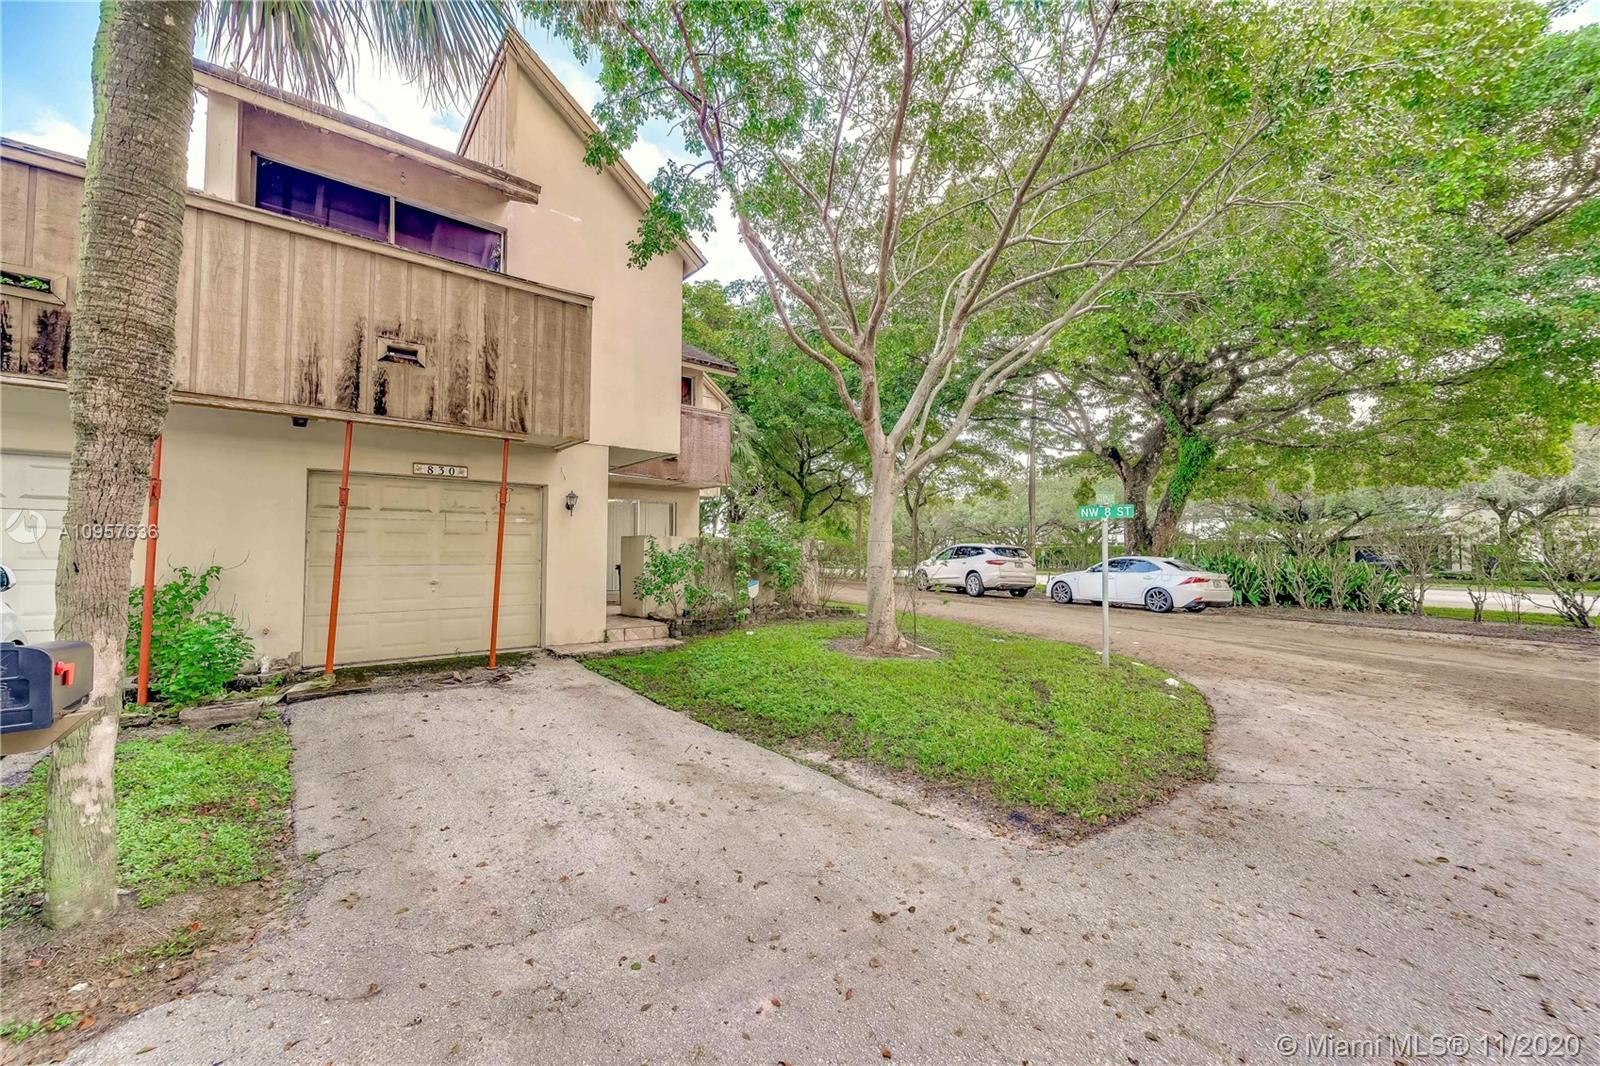 Photo of 830 NW 81st Ave #6, Plantation, FL 33322 (MLS # A10957636)